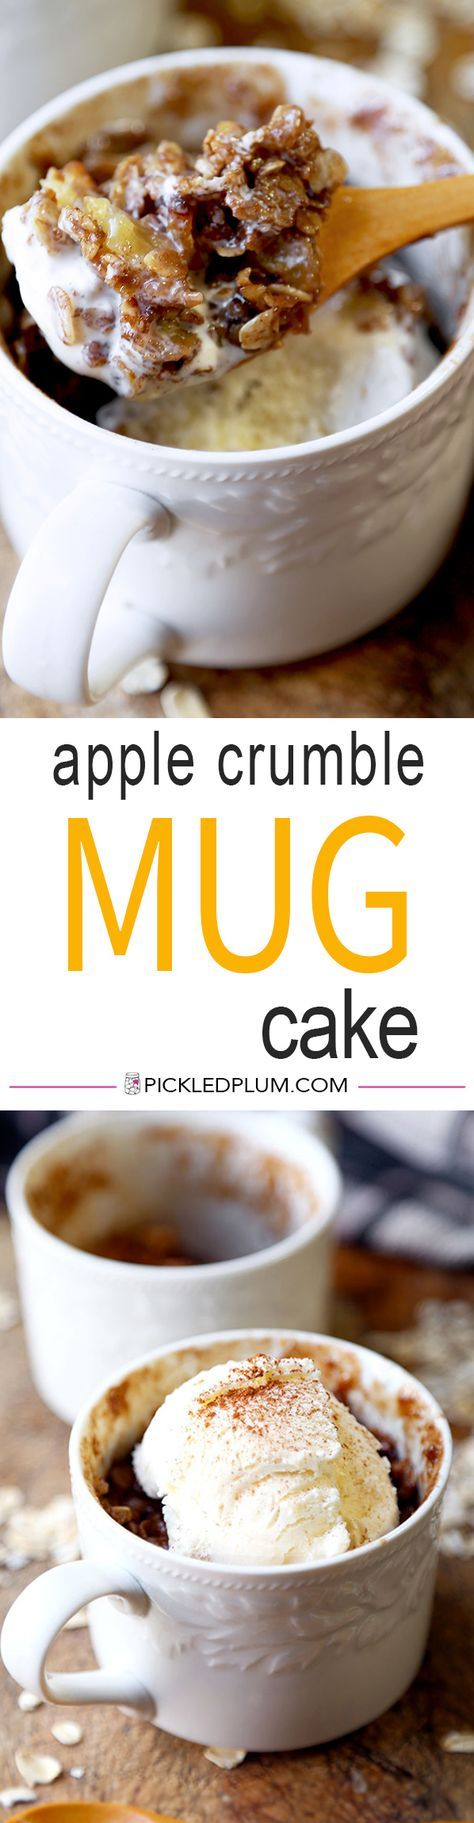 Apple Crumble Mug Cake - A sweet, chewy and fruit loaded Apple Crumble Mug Cake Recipe that tastes divine with a scoop of creamy vanilla ice cream! Ready in 15 minutes or less. Recipe, dessert, snack, apples, mug cake, easy | http://pickledplum.com